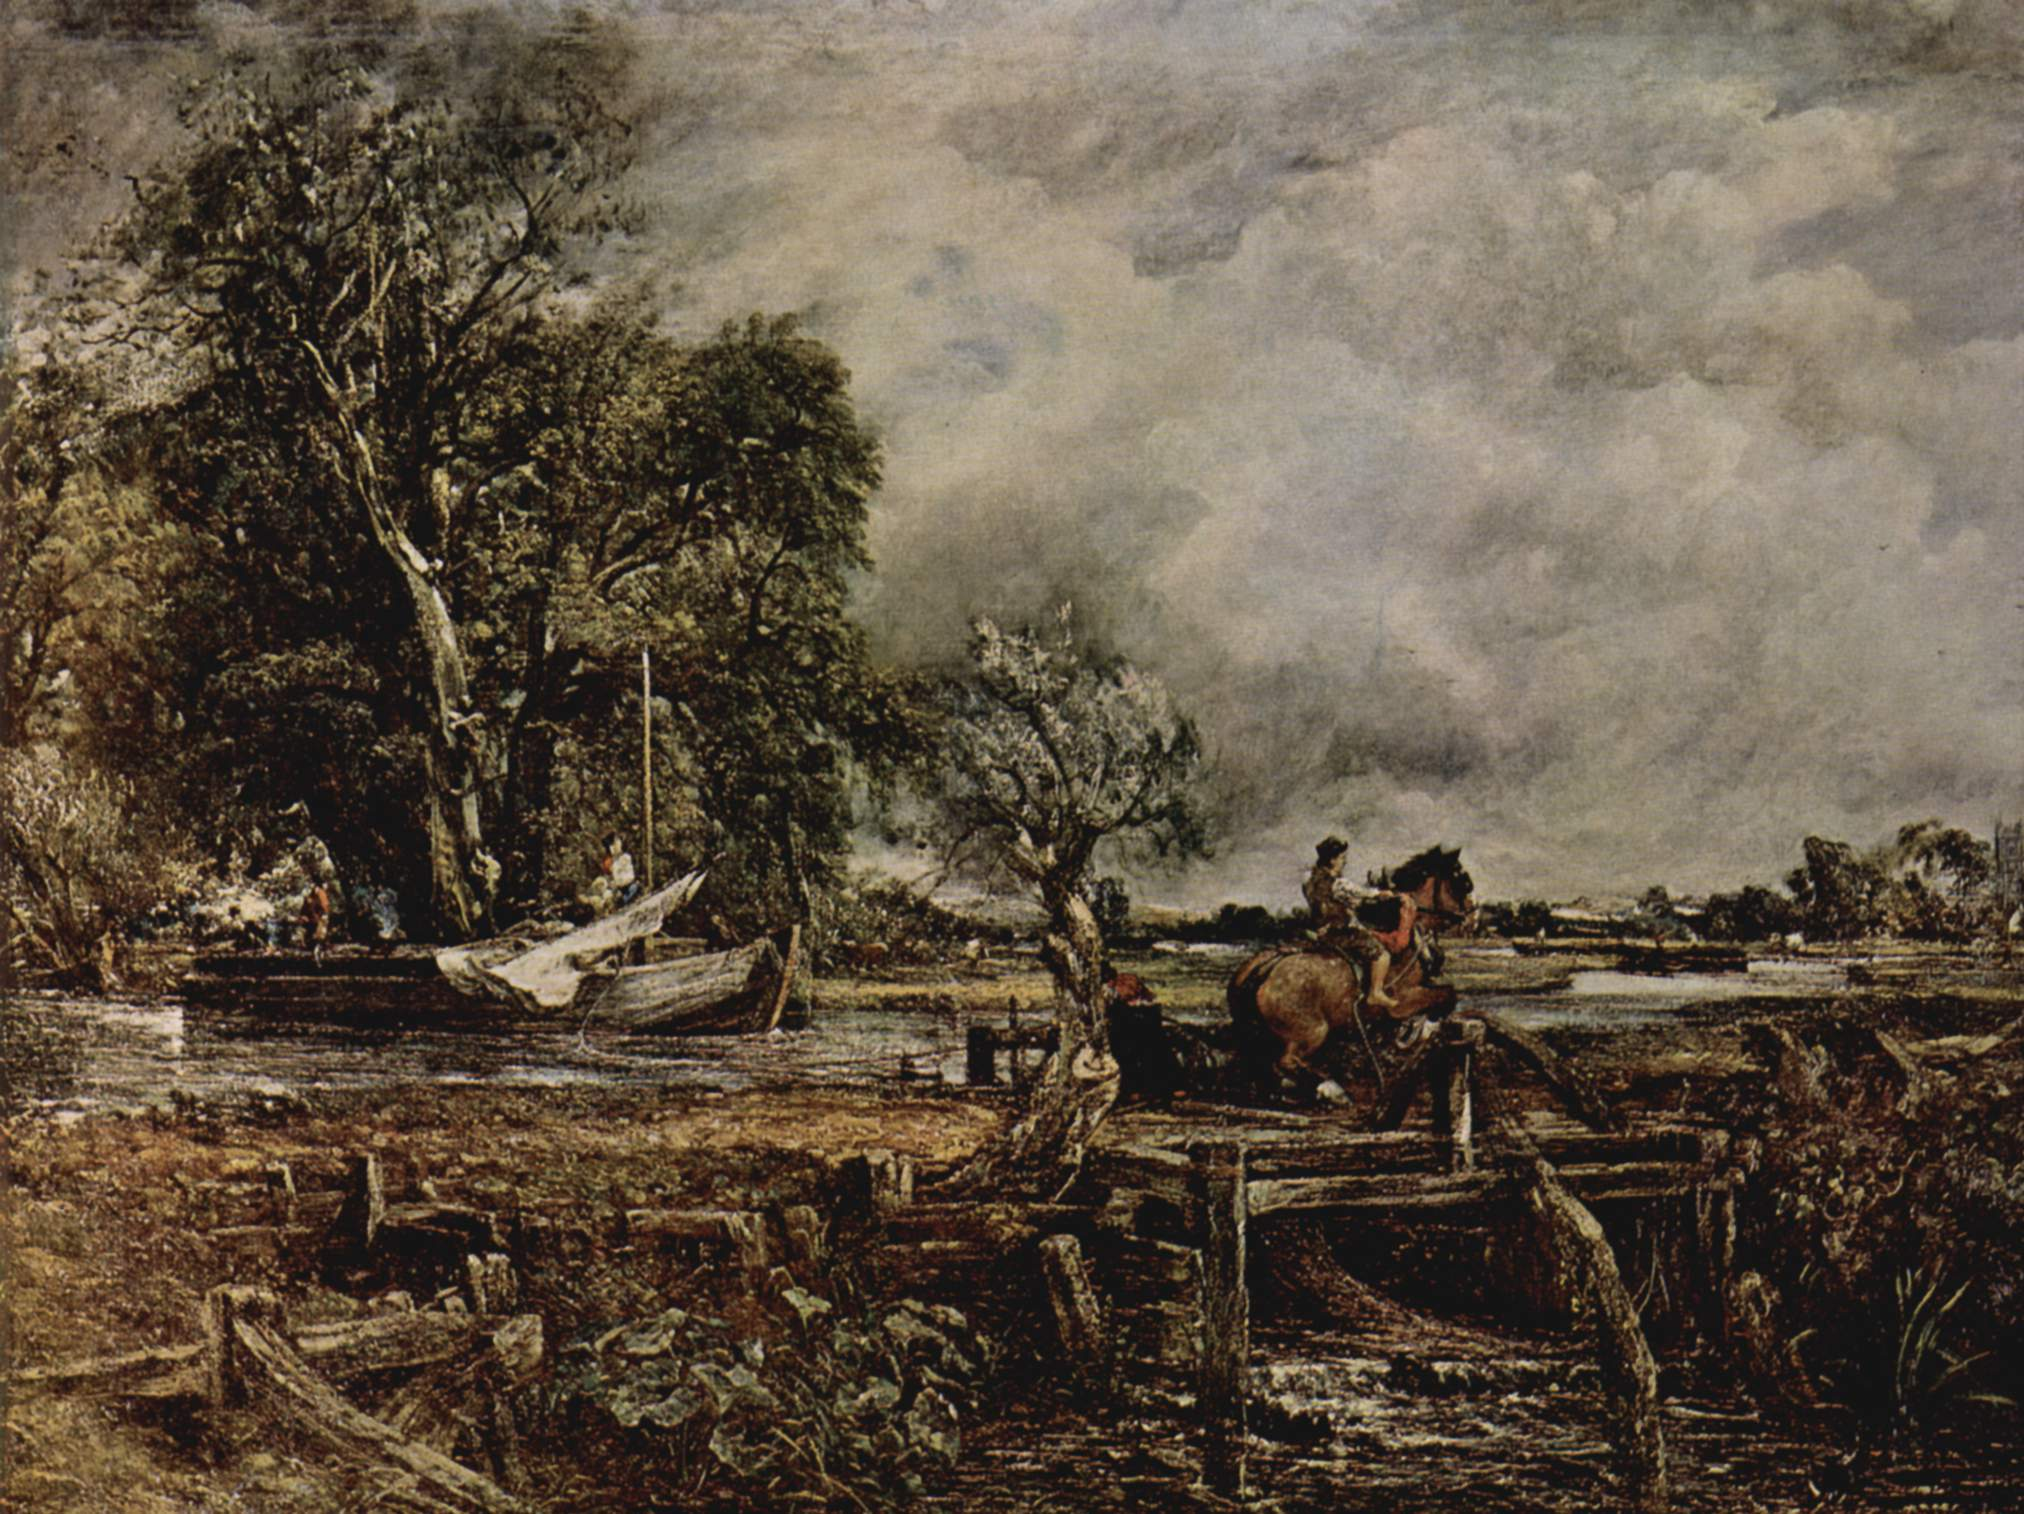 https://uploads2.wikiart.org/images/john-constable/the-leaping-horse.jpg